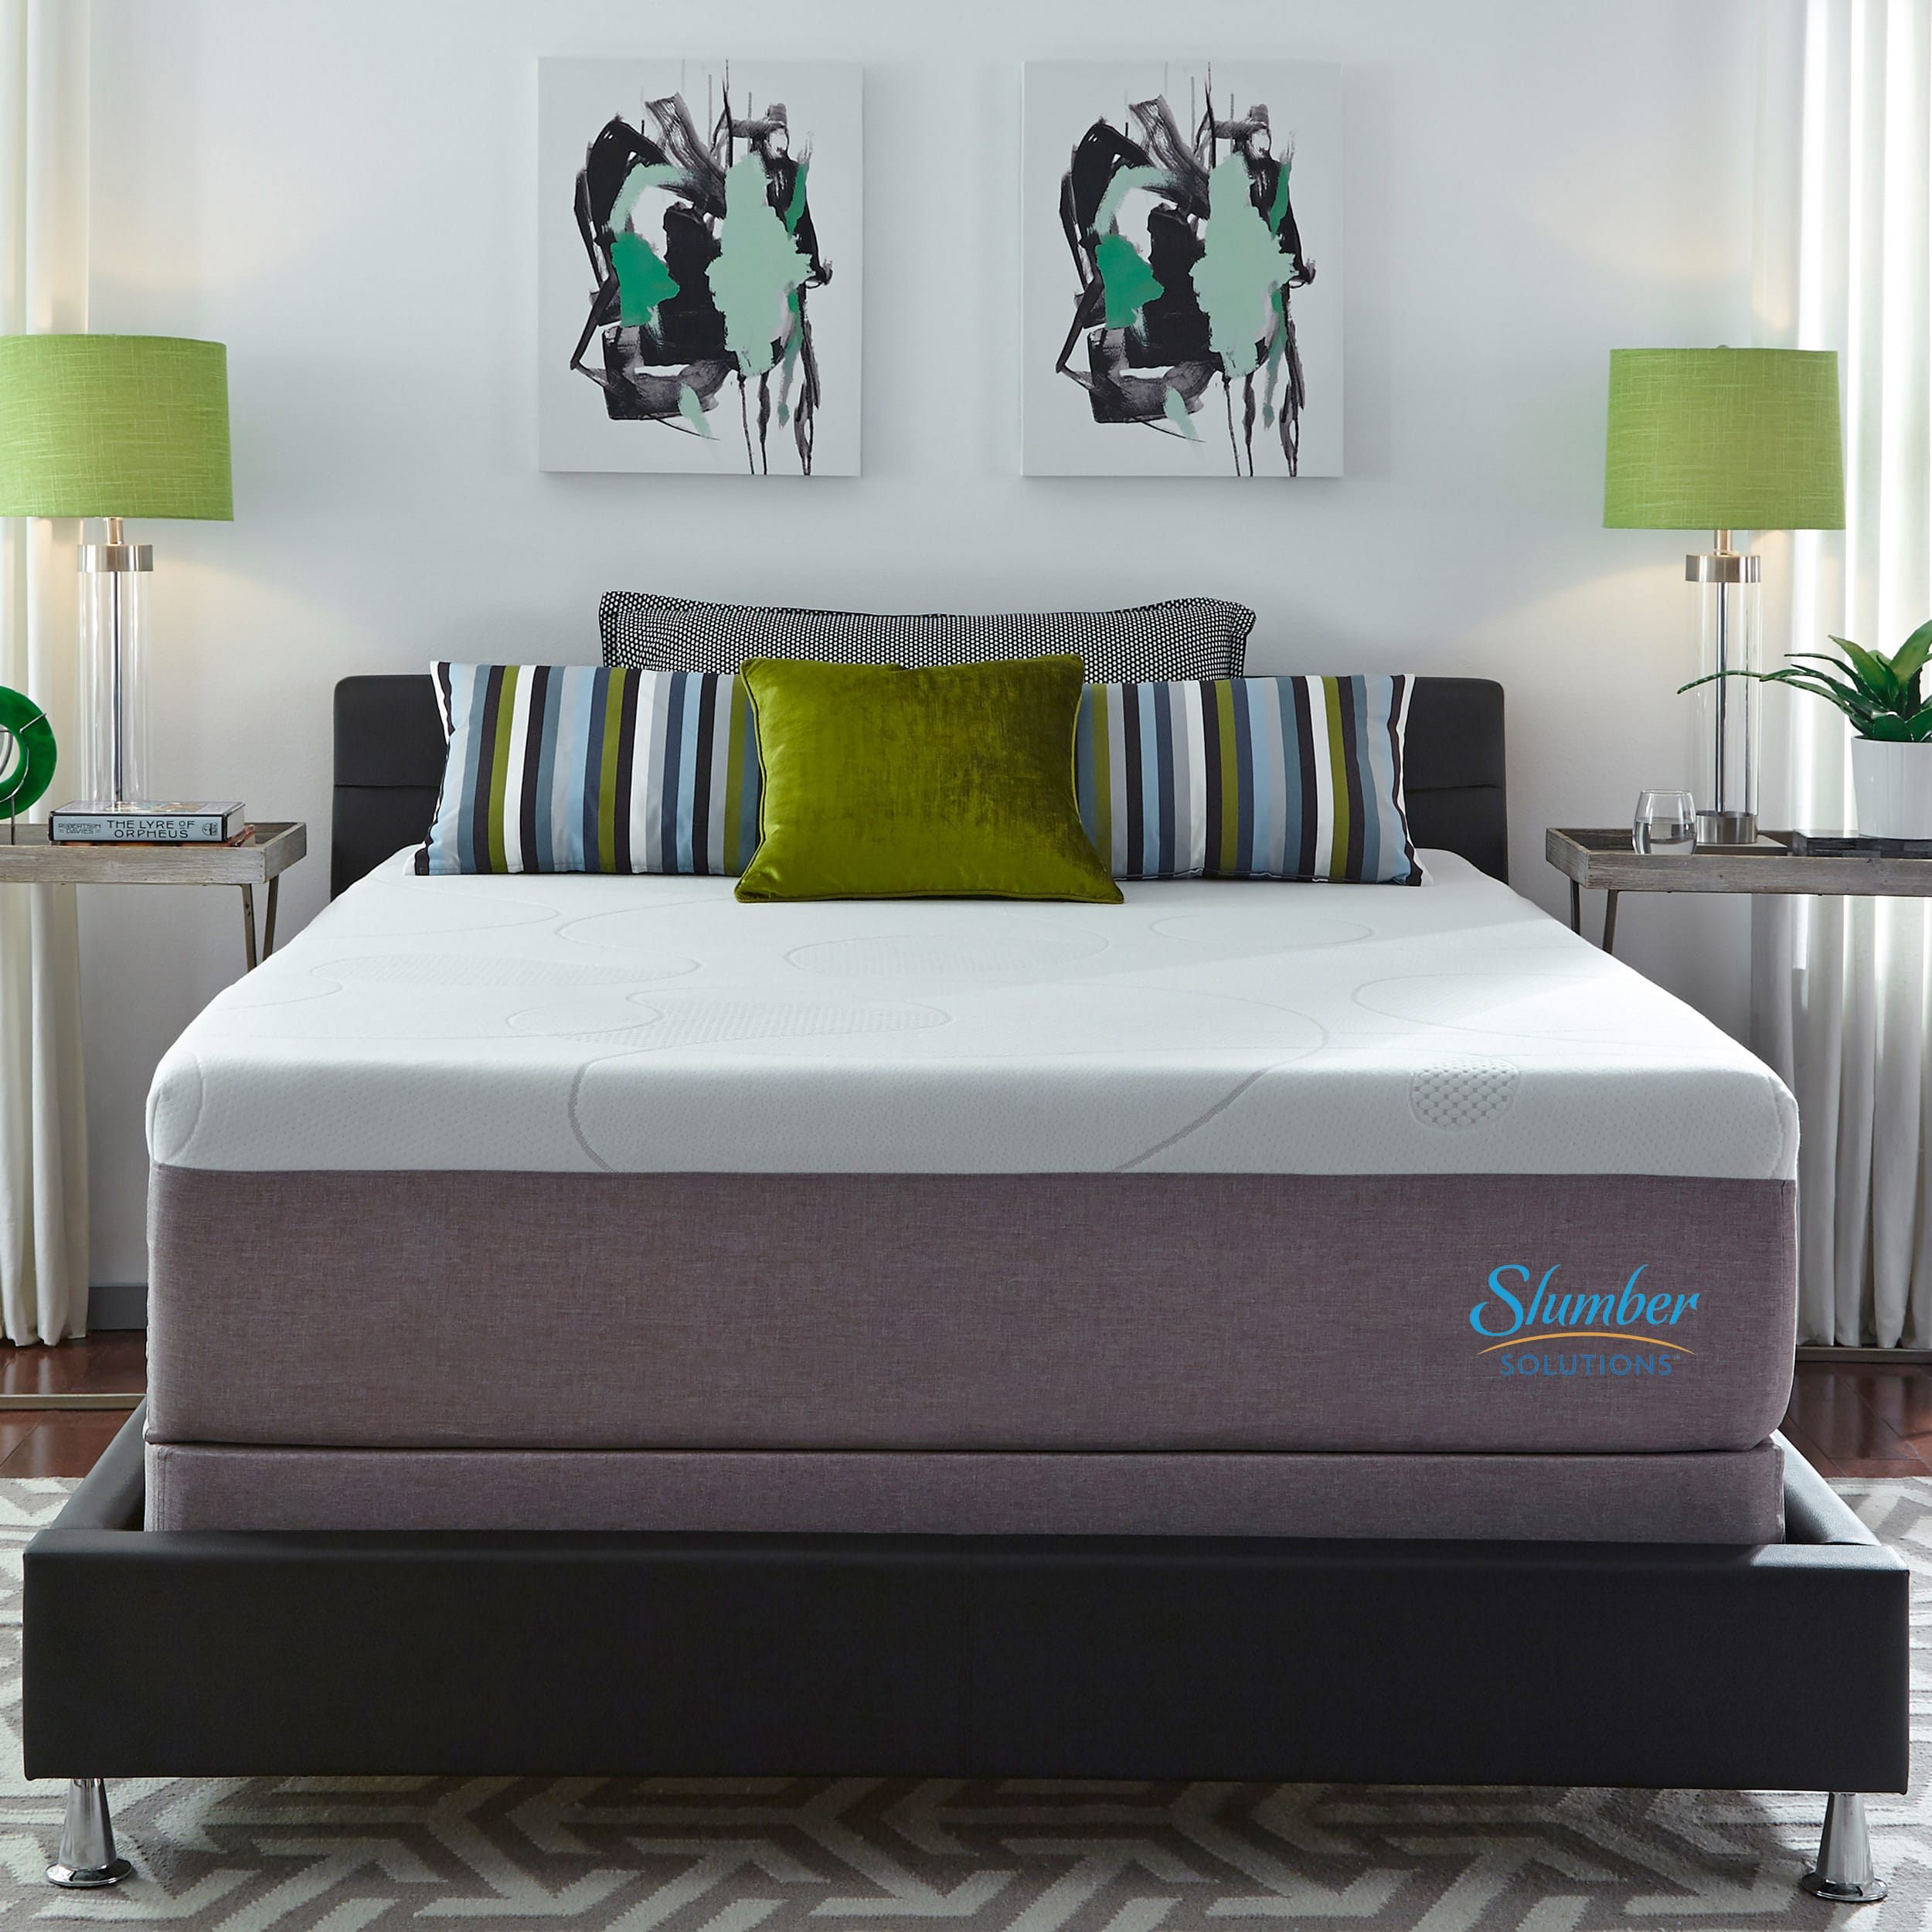 Slumber Solutions Gel Memory Foam 14 inch Queen size Mattress Set